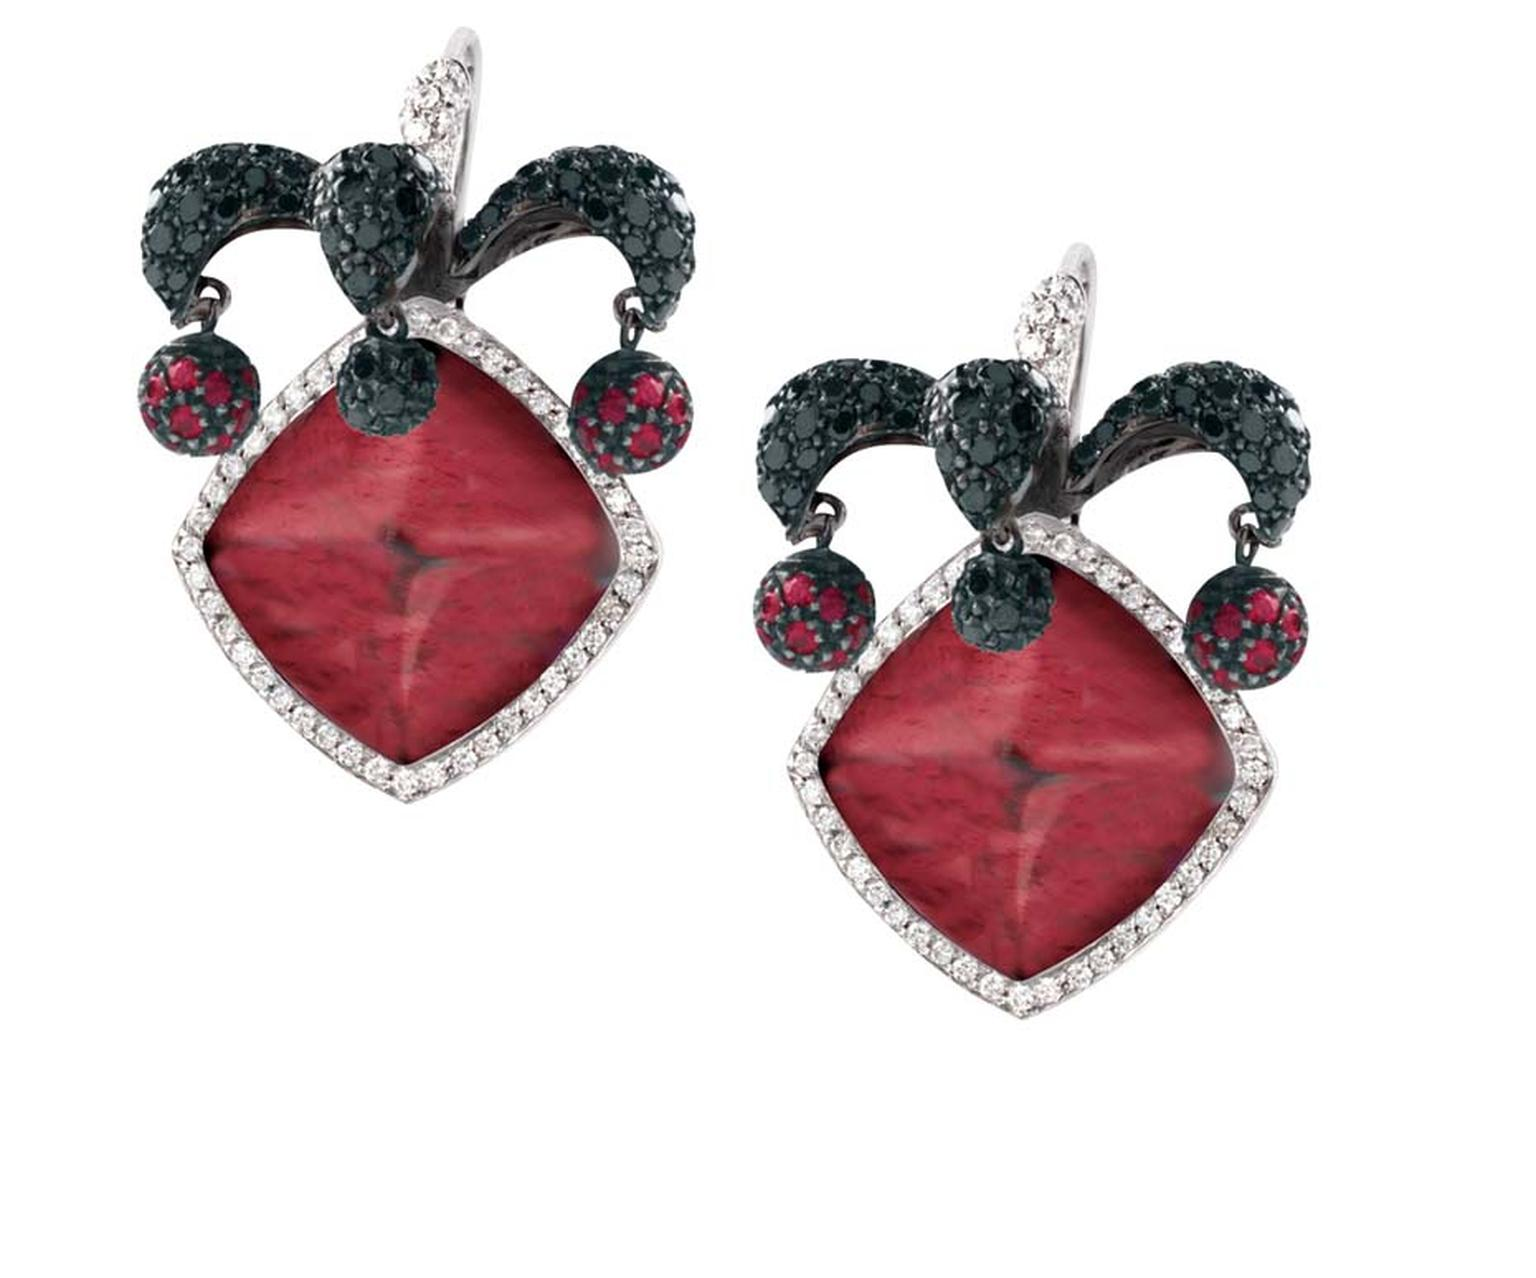 Avakian Joker earrings set with rubellites and black and white diamonds